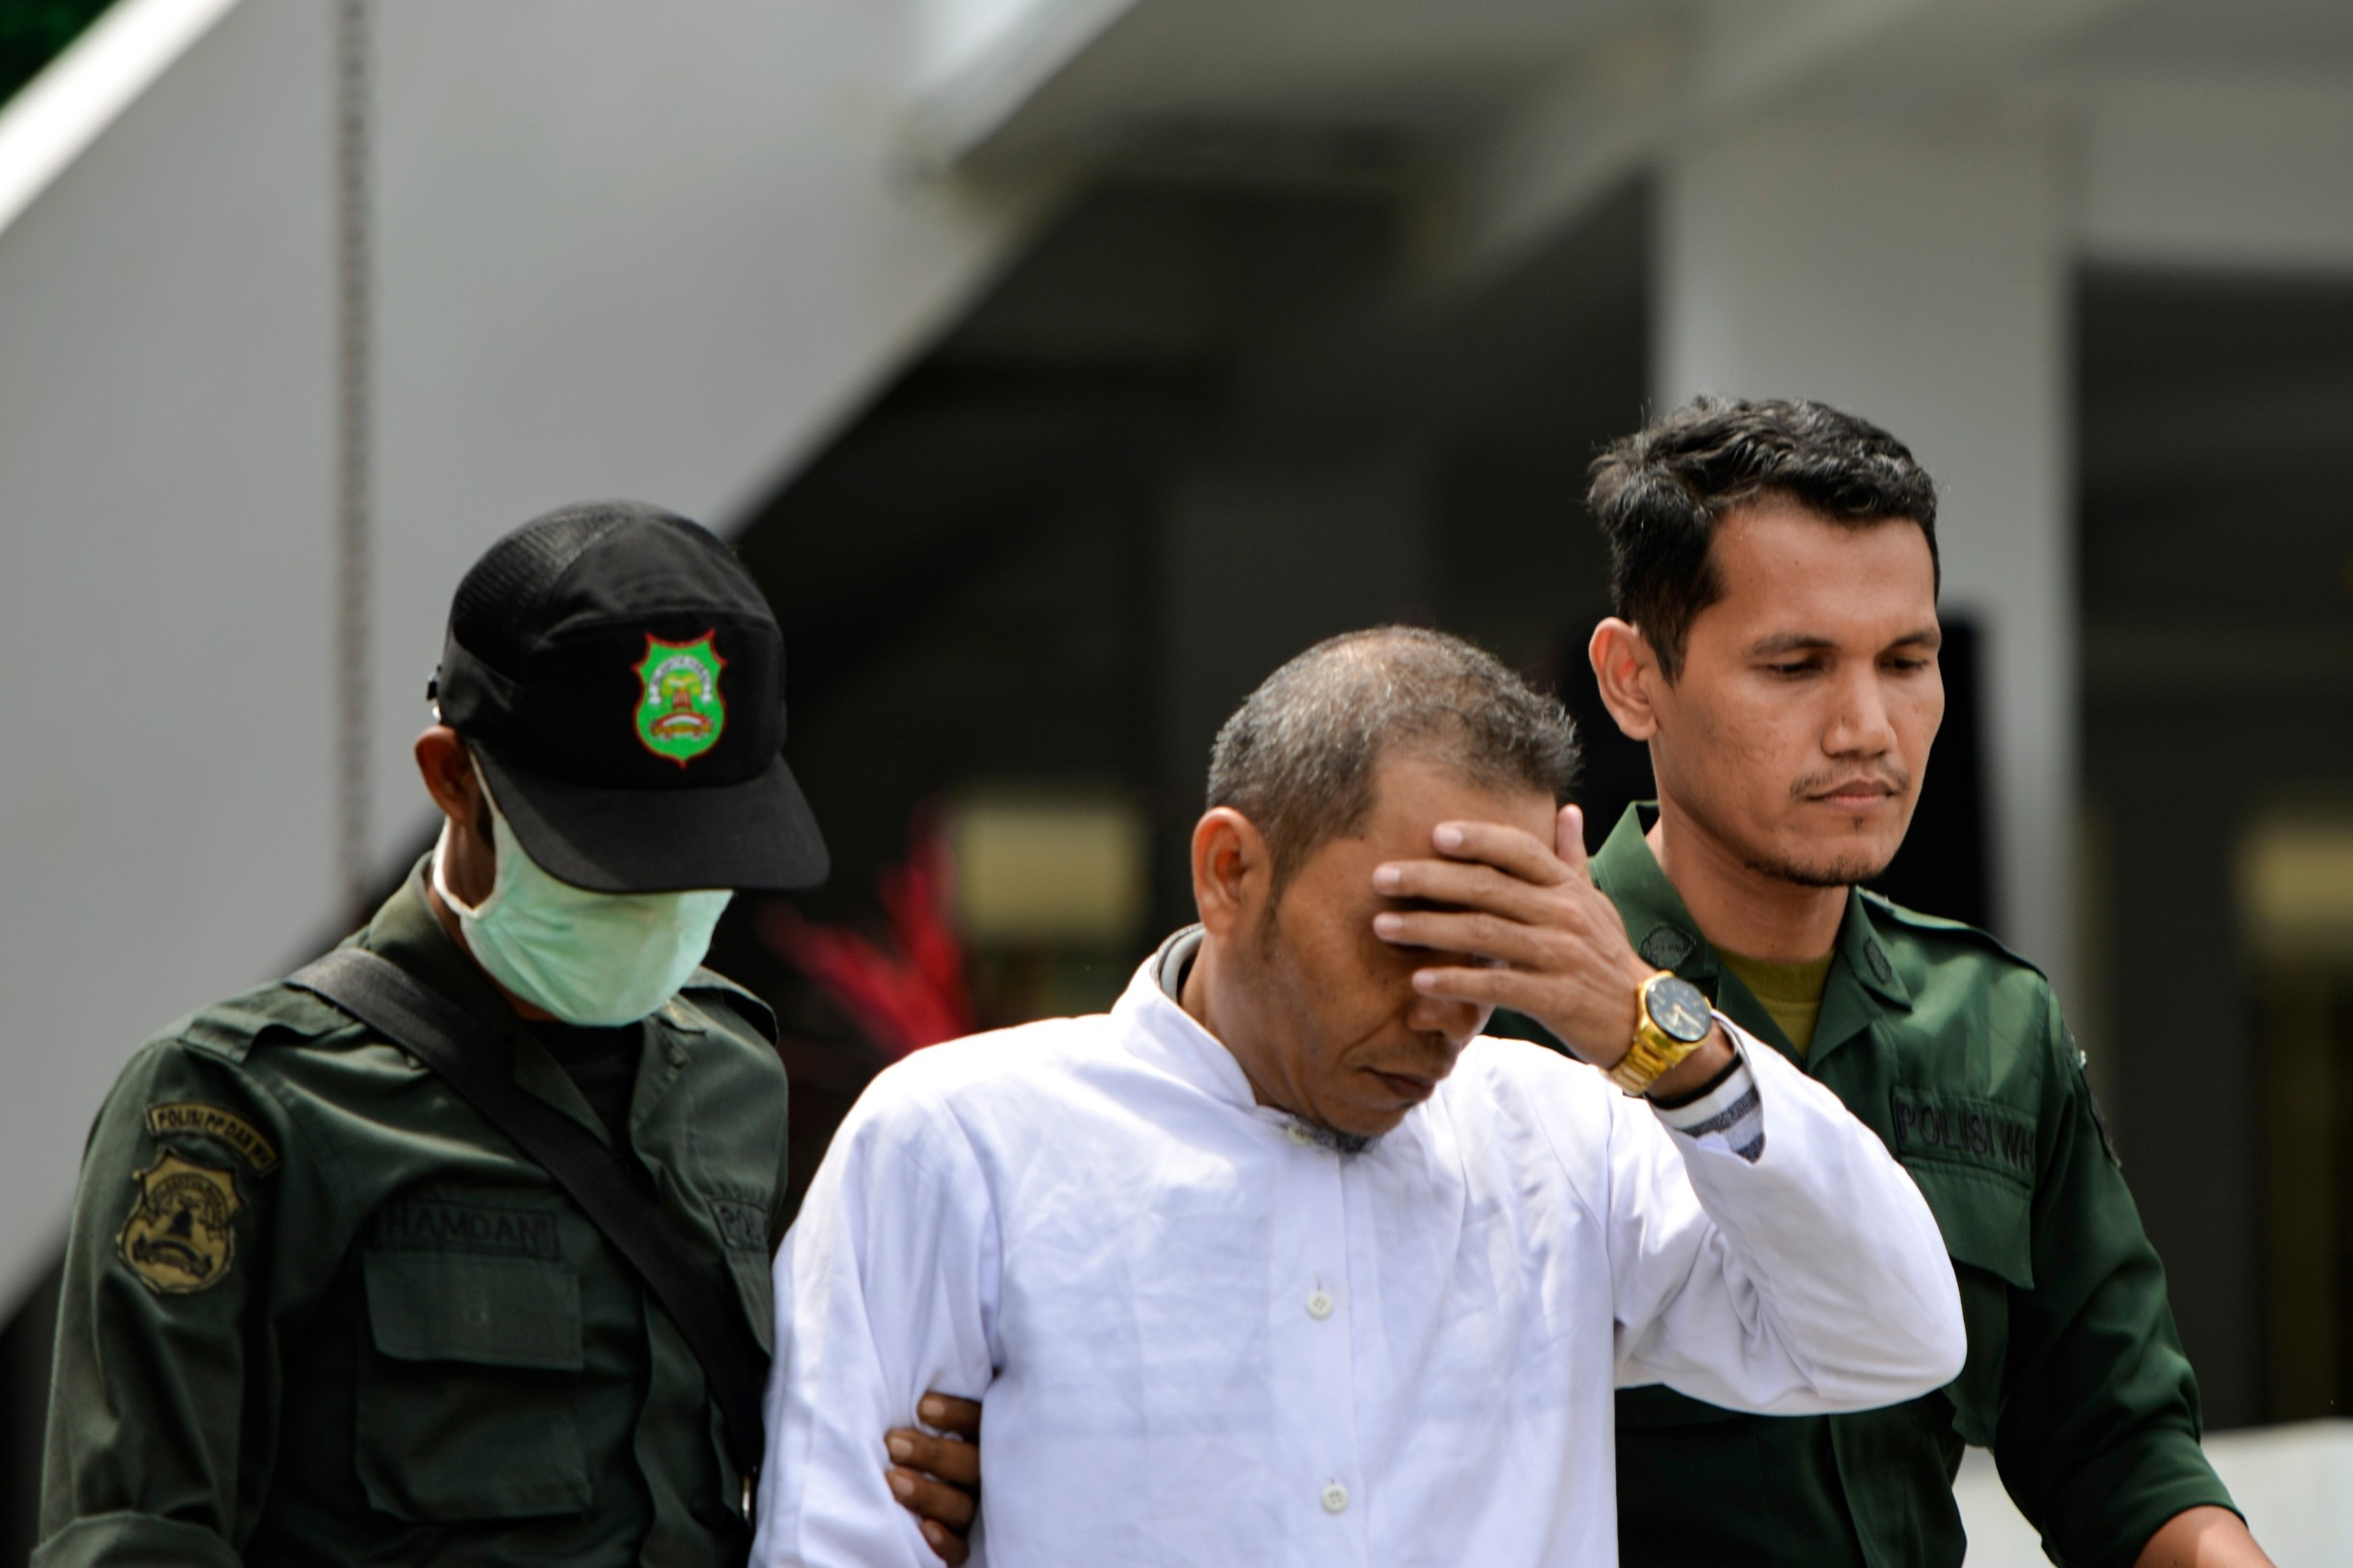 Aceh Ulema Council (MPU) member Mukhlis (C) is escorted by members of the Sharia police before being whipped in public in Banda Aceh on October 31, 2019. An Indonesian man working for an organisation which helped draft strict religious laws ordering adulterers to be flogged was himself publically whipped on October 31 after he was caught having an affair with a married woman., Image: 480105580, License: Rights-managed, Restrictions: , Model Release: no, Credit line: CHAIDEER MAHYUDDIN / AFP / Profimedia